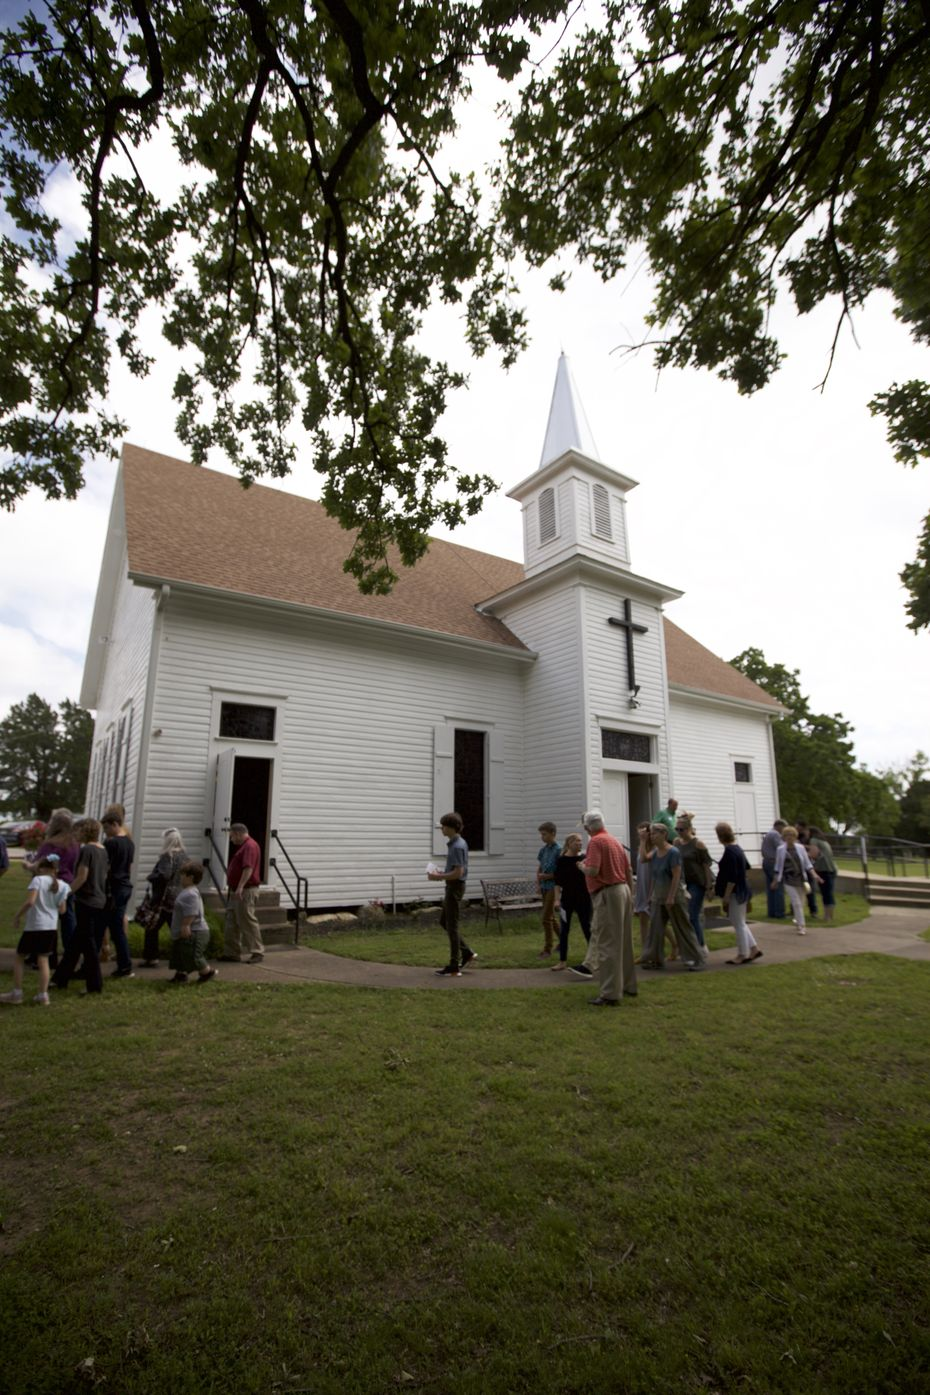 Churchgoers file out of College Mound United Methodist Church to enjoy the 2019 Decoration Day feast. Members of the community 40 miles east of Dallas have honored their ancestors with grave-site flowers and a feast in a tradition that dates back 134 years.